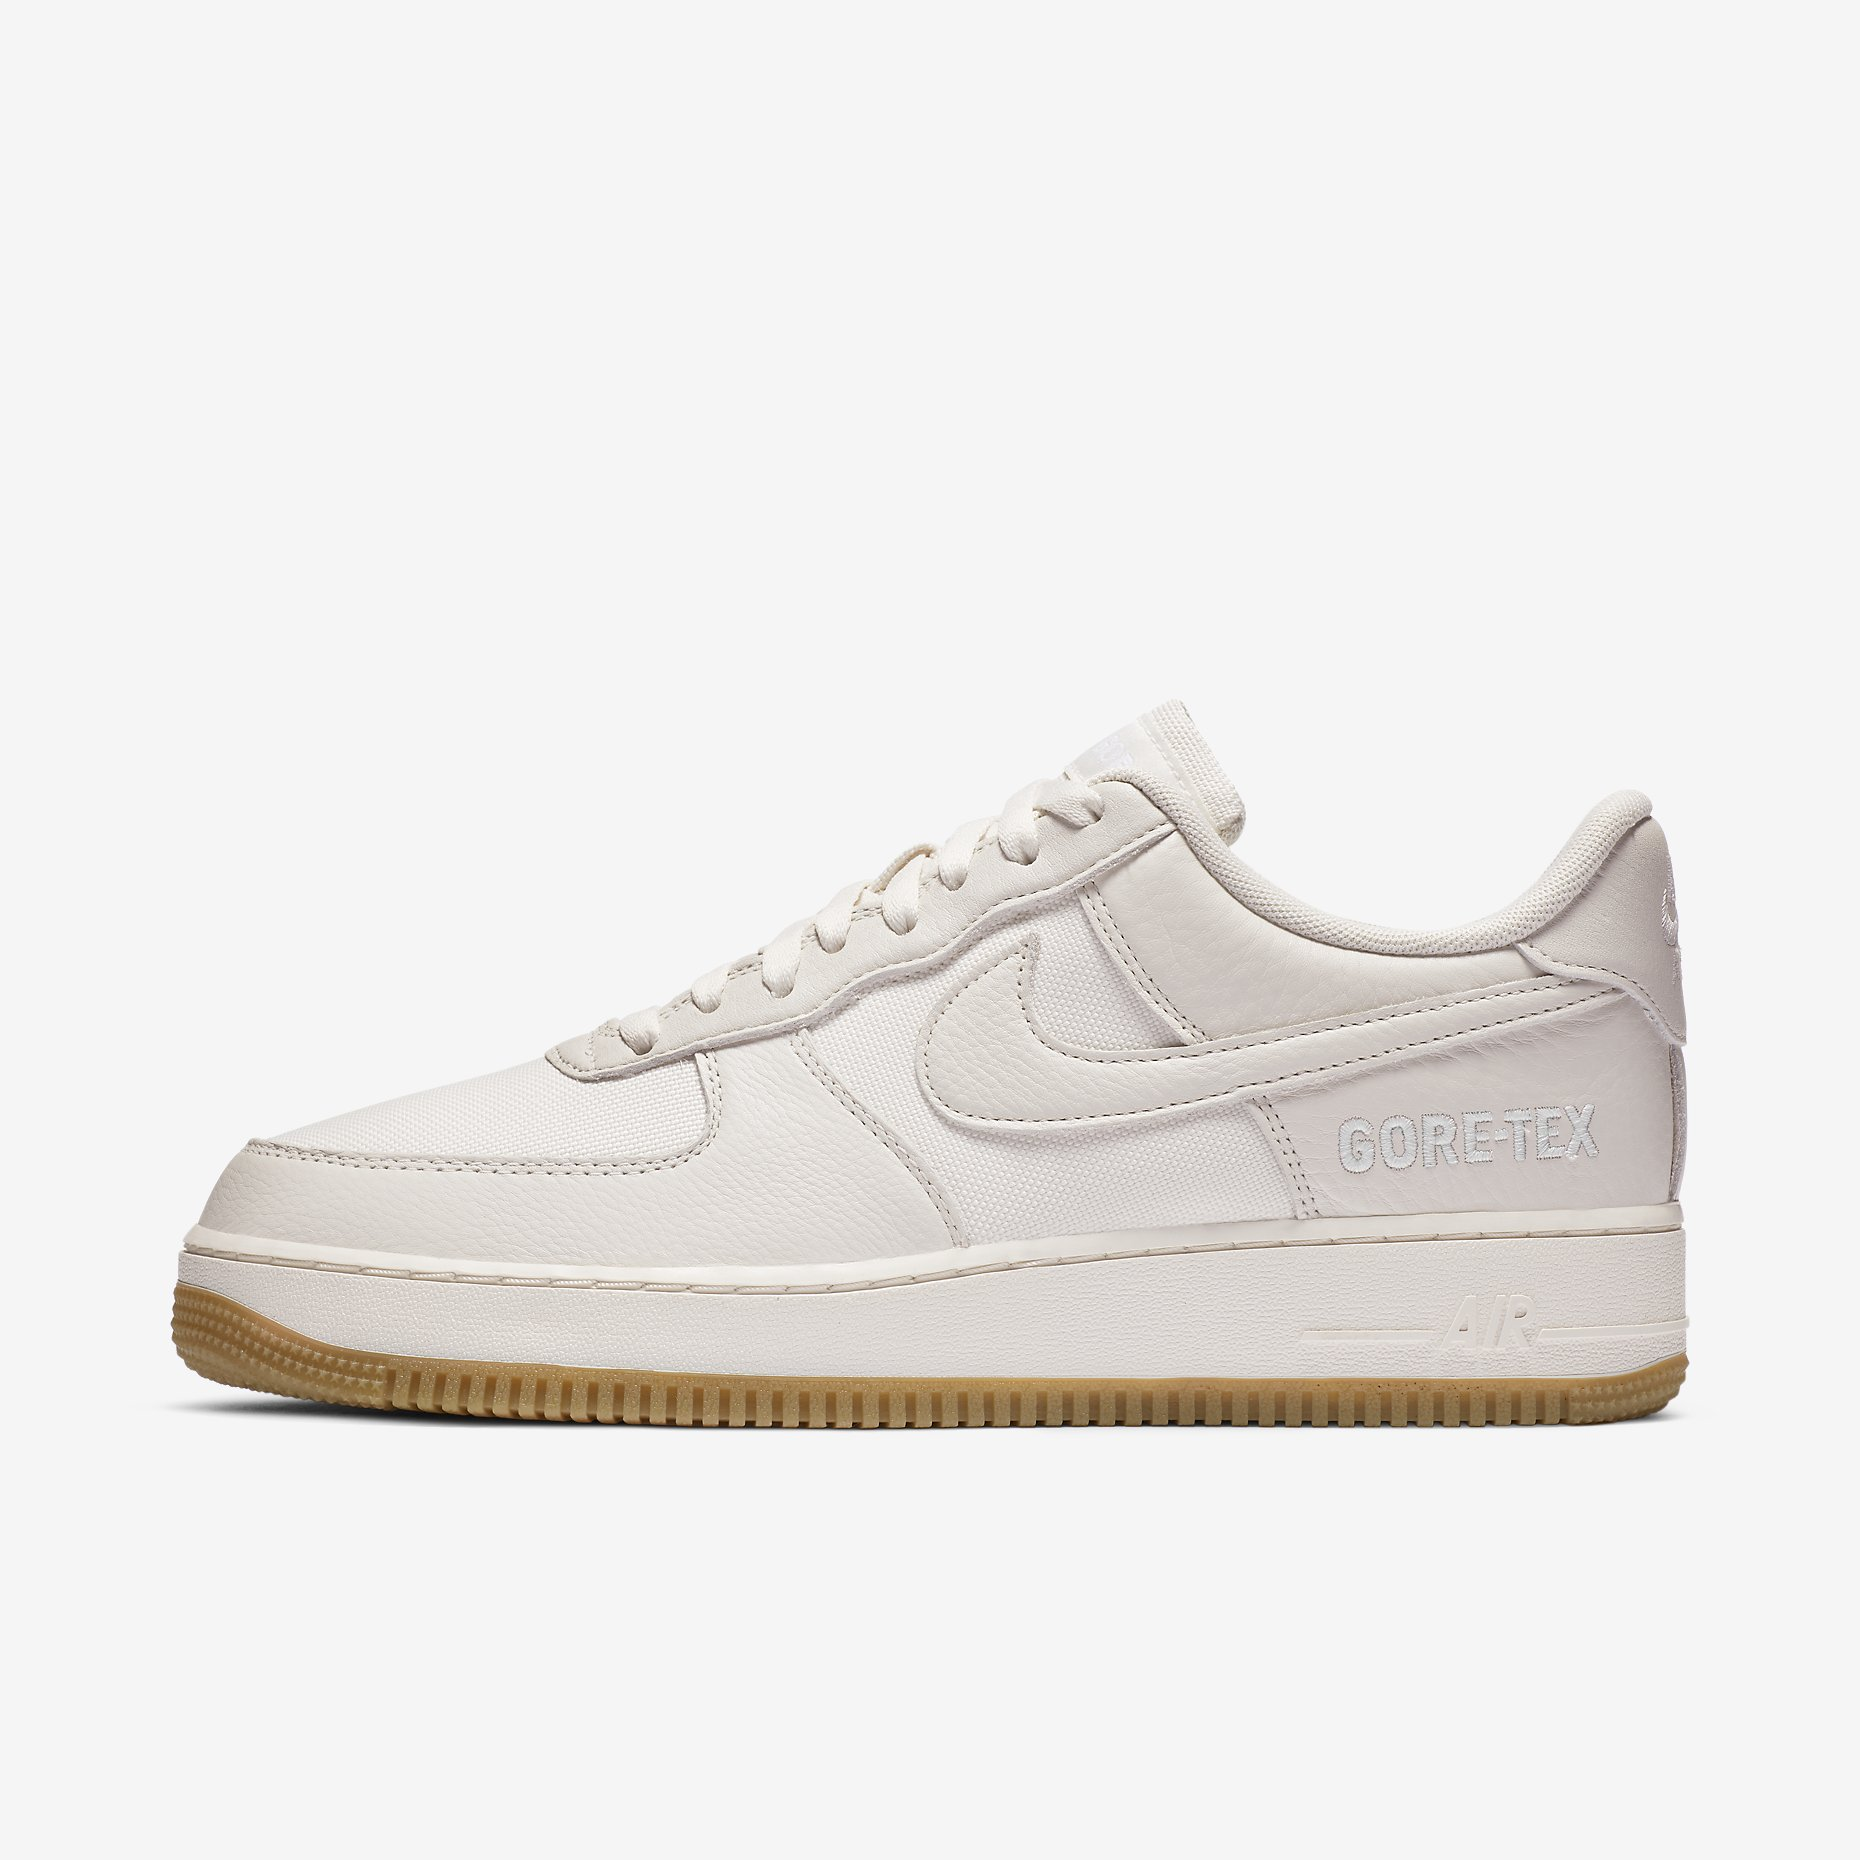 Moresneakers Nike is rolling out a newly designed silhouette titled the air force 1 shadow. more sneakers